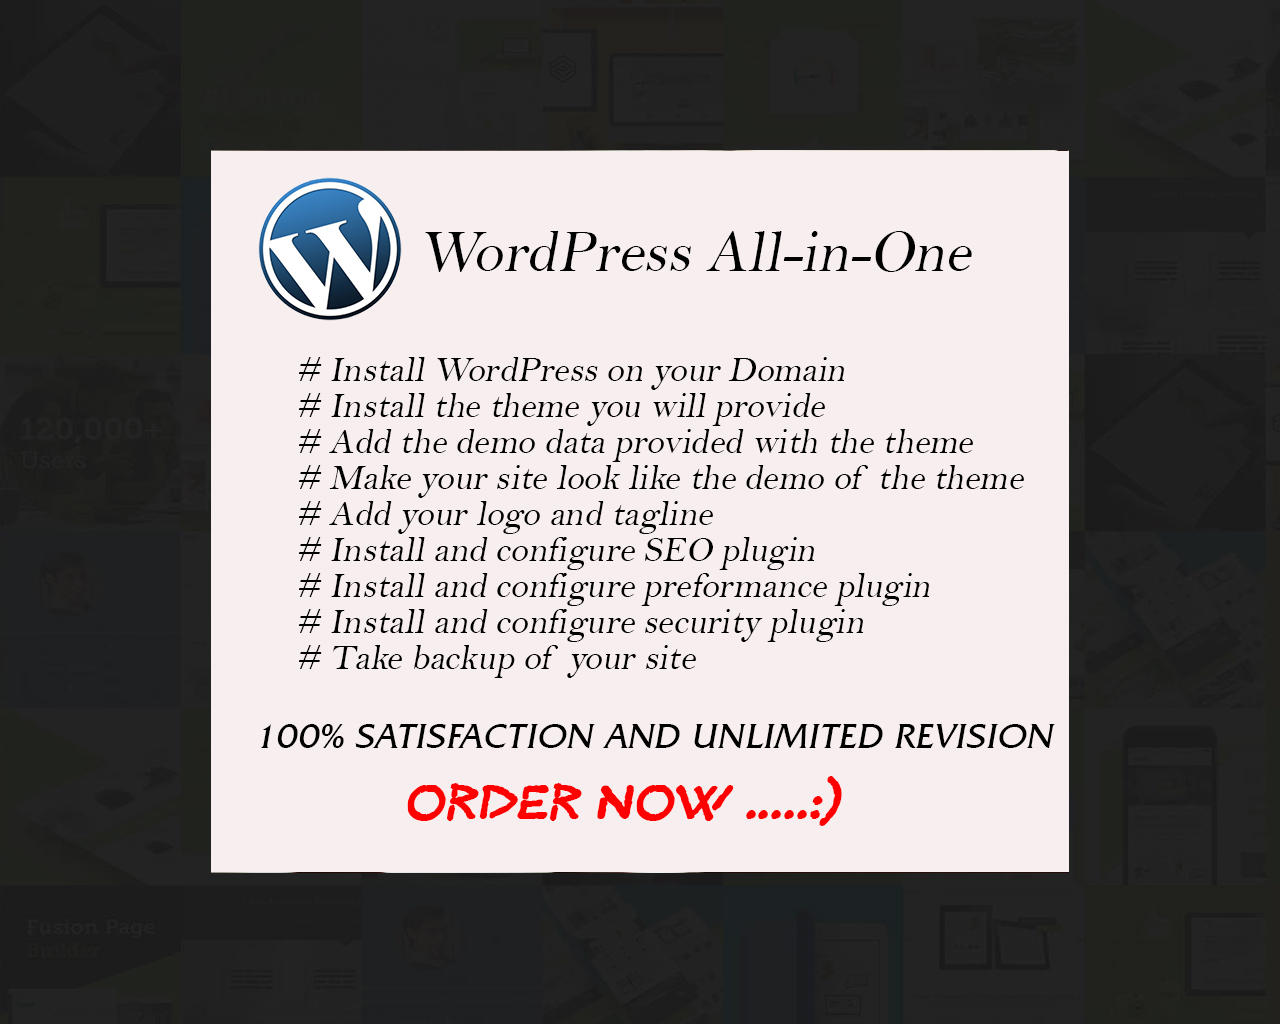 All-In-One WordPress Theme Installation With Demo Data & Plugins by moshiur008 - 101269